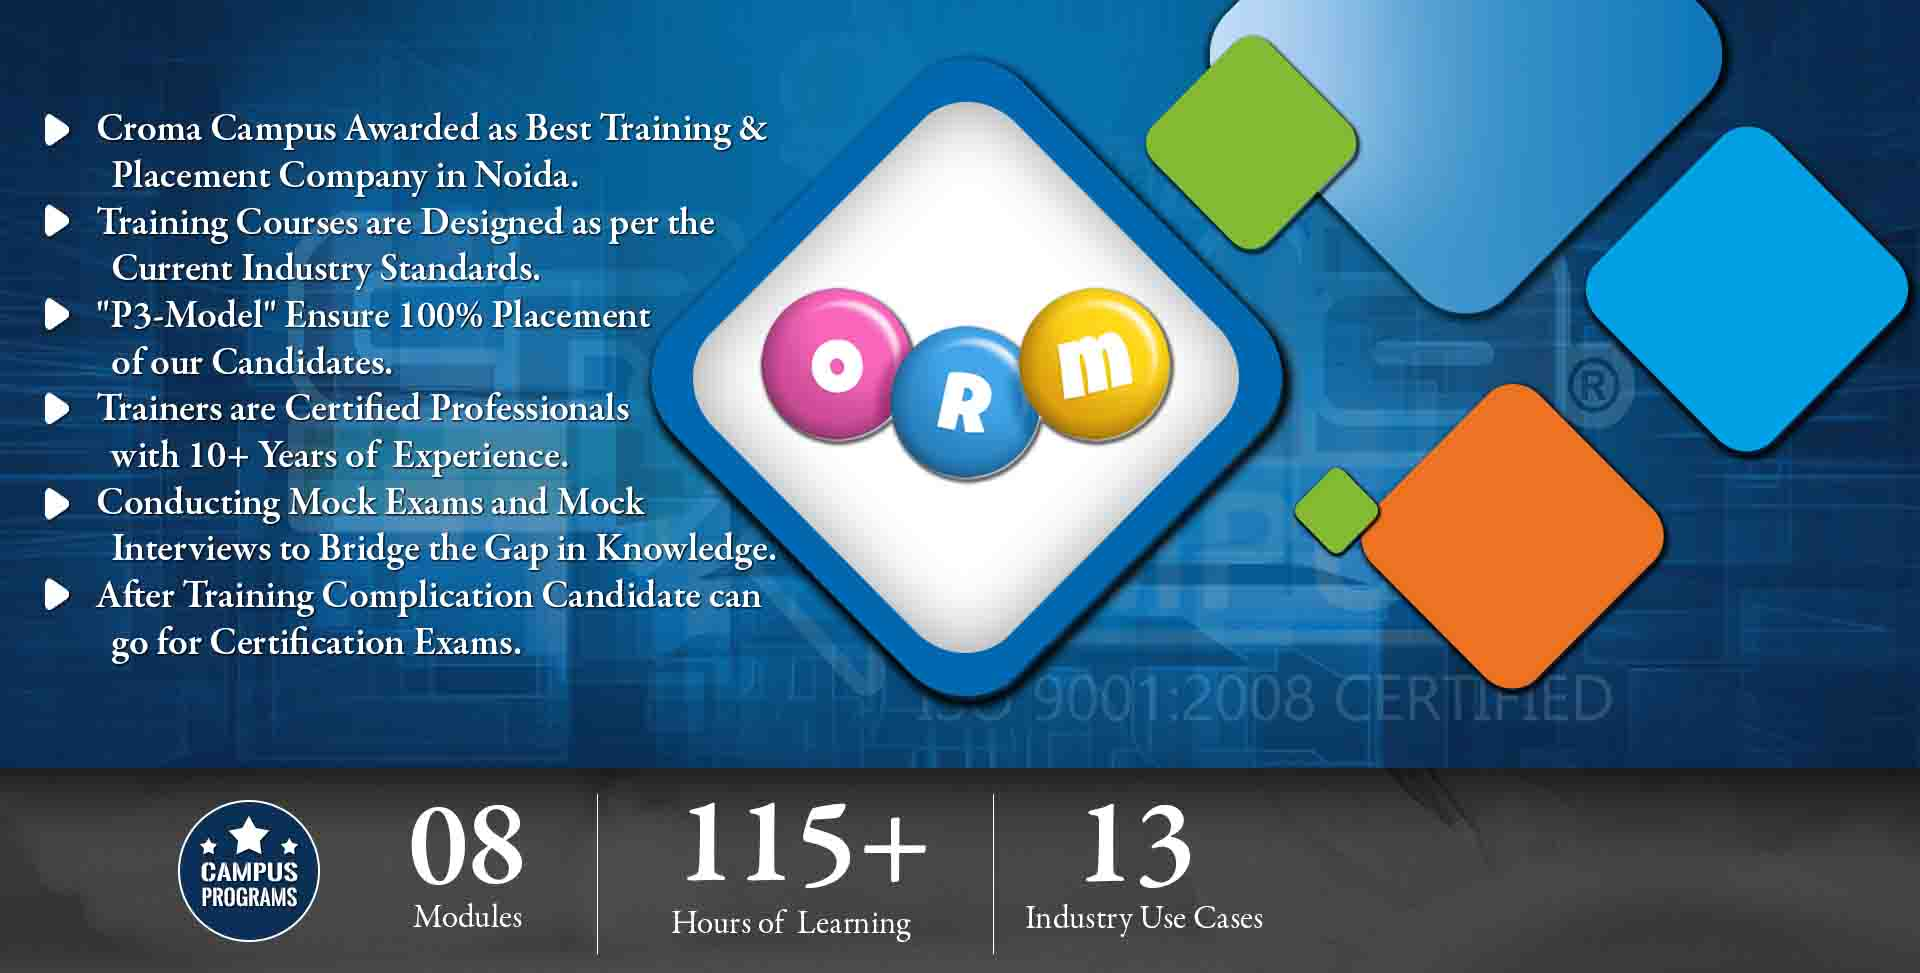 ORM Training in Noida- Croma Campus